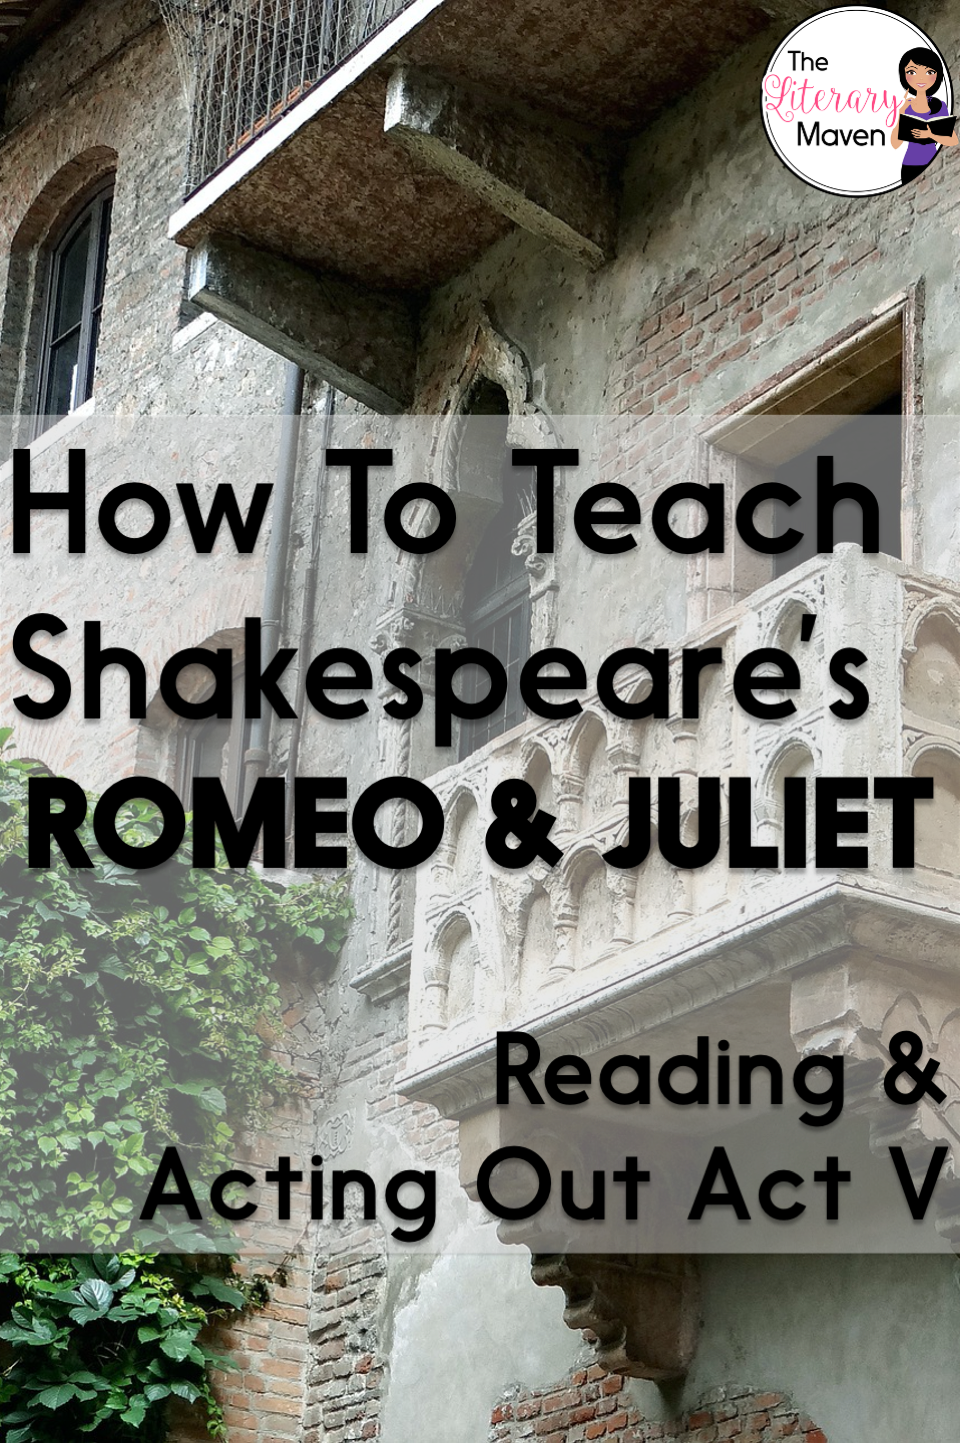 Whether you are a teacher tackling William Shakespeare's play Romeo and Juliet for the first time or you are a veteran looking to change how you've taught it in the past, it is always helpful to find out how another teacher plans it all out. Read on to find out what scenes I focus on in Act V and why, how my students read and act out those scenes, and what activities I use to extend learning and make connections.